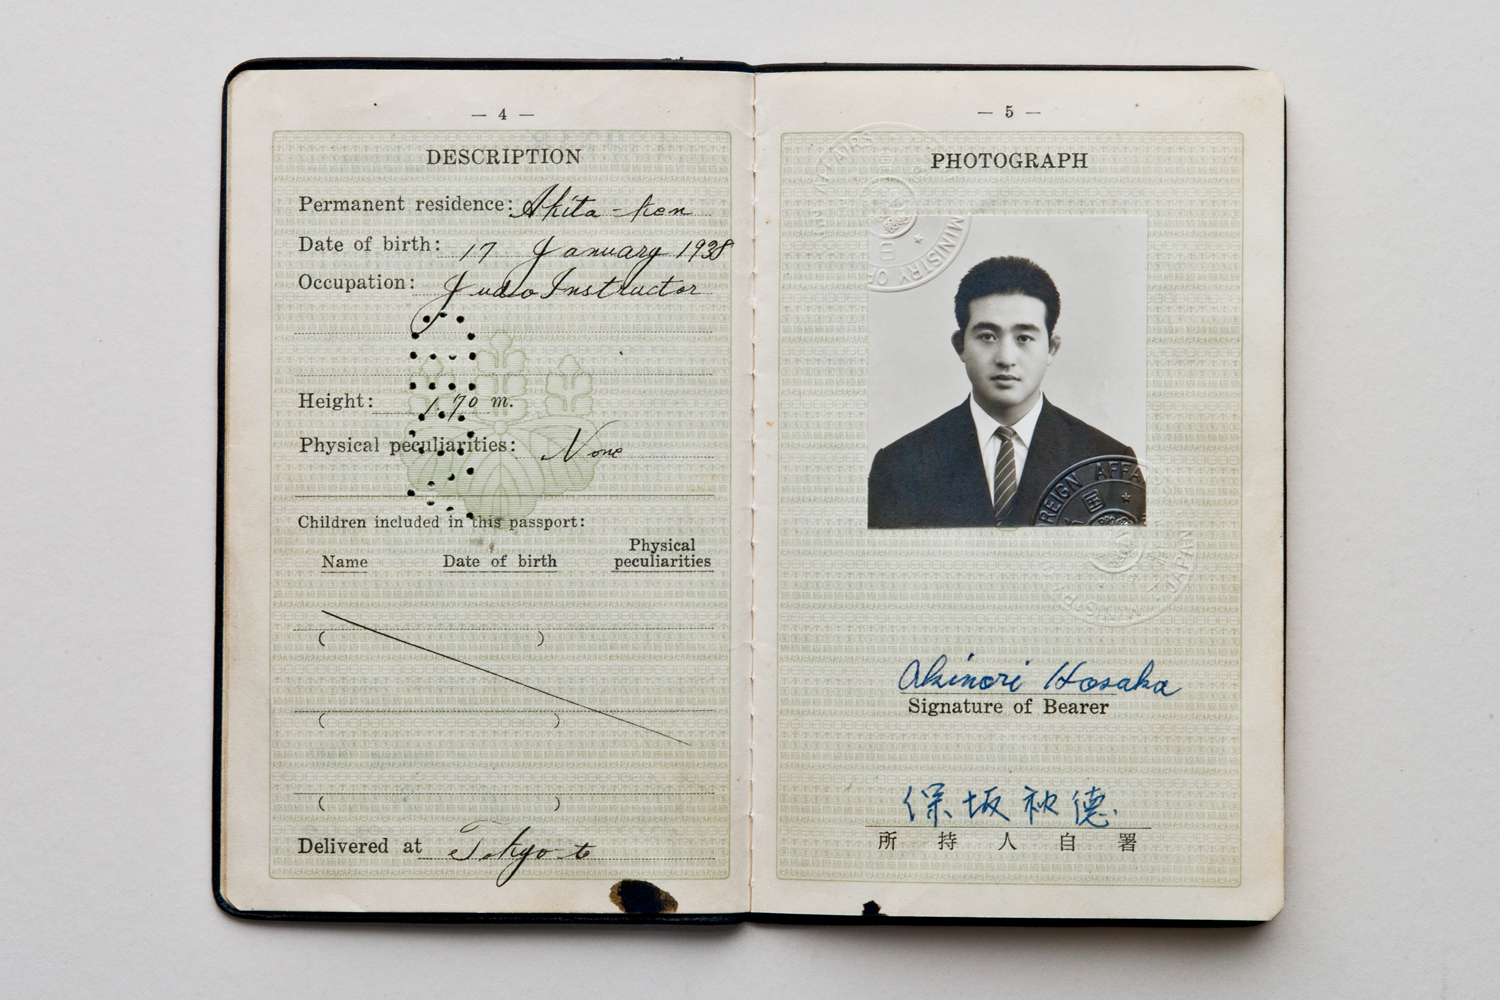 Akinori Hosaka's passport.  He arrived in the UK in 1962.